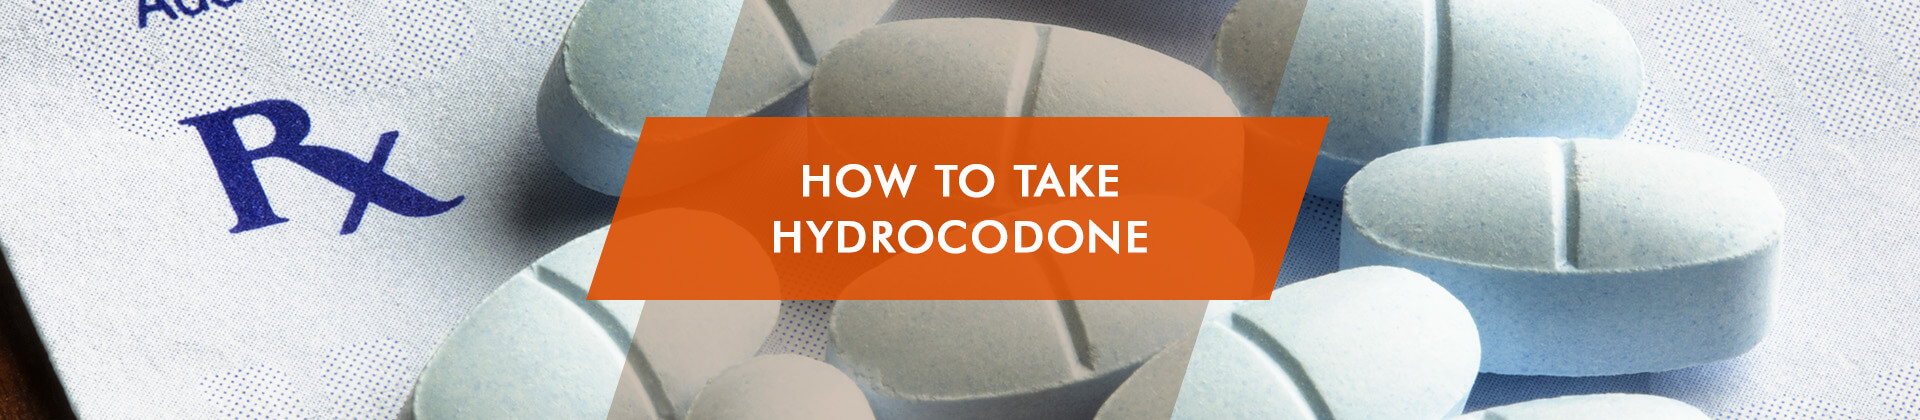 how to take hydrocodone